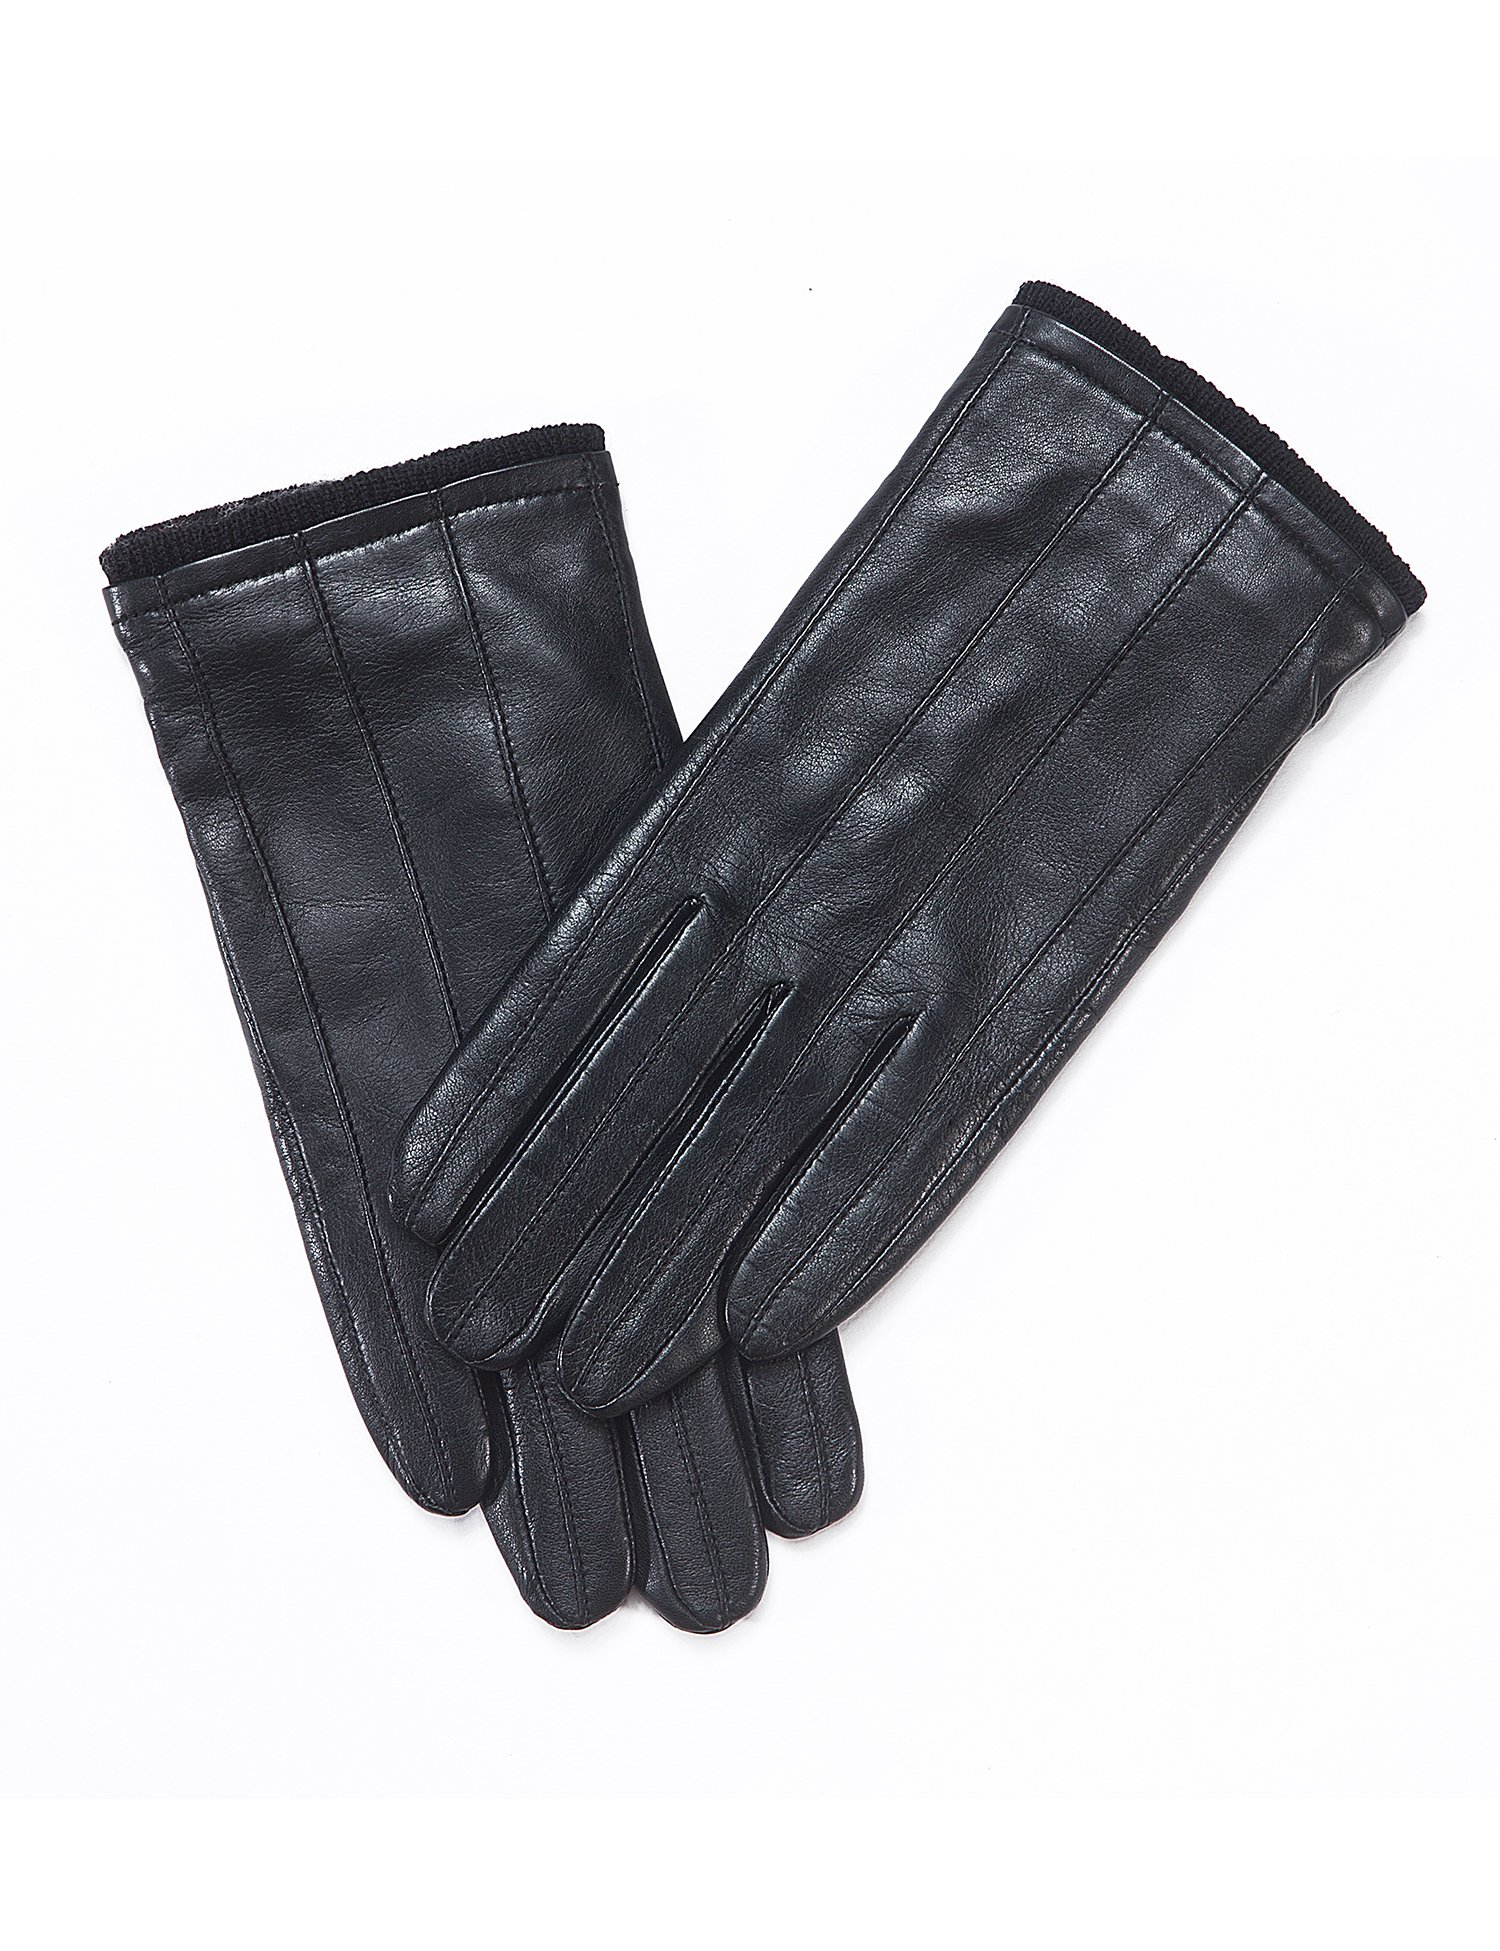 YISEVEN Men's Genuine Nappa Leather Lined Winter Gloves -Black/Touchscreen,Black,11''